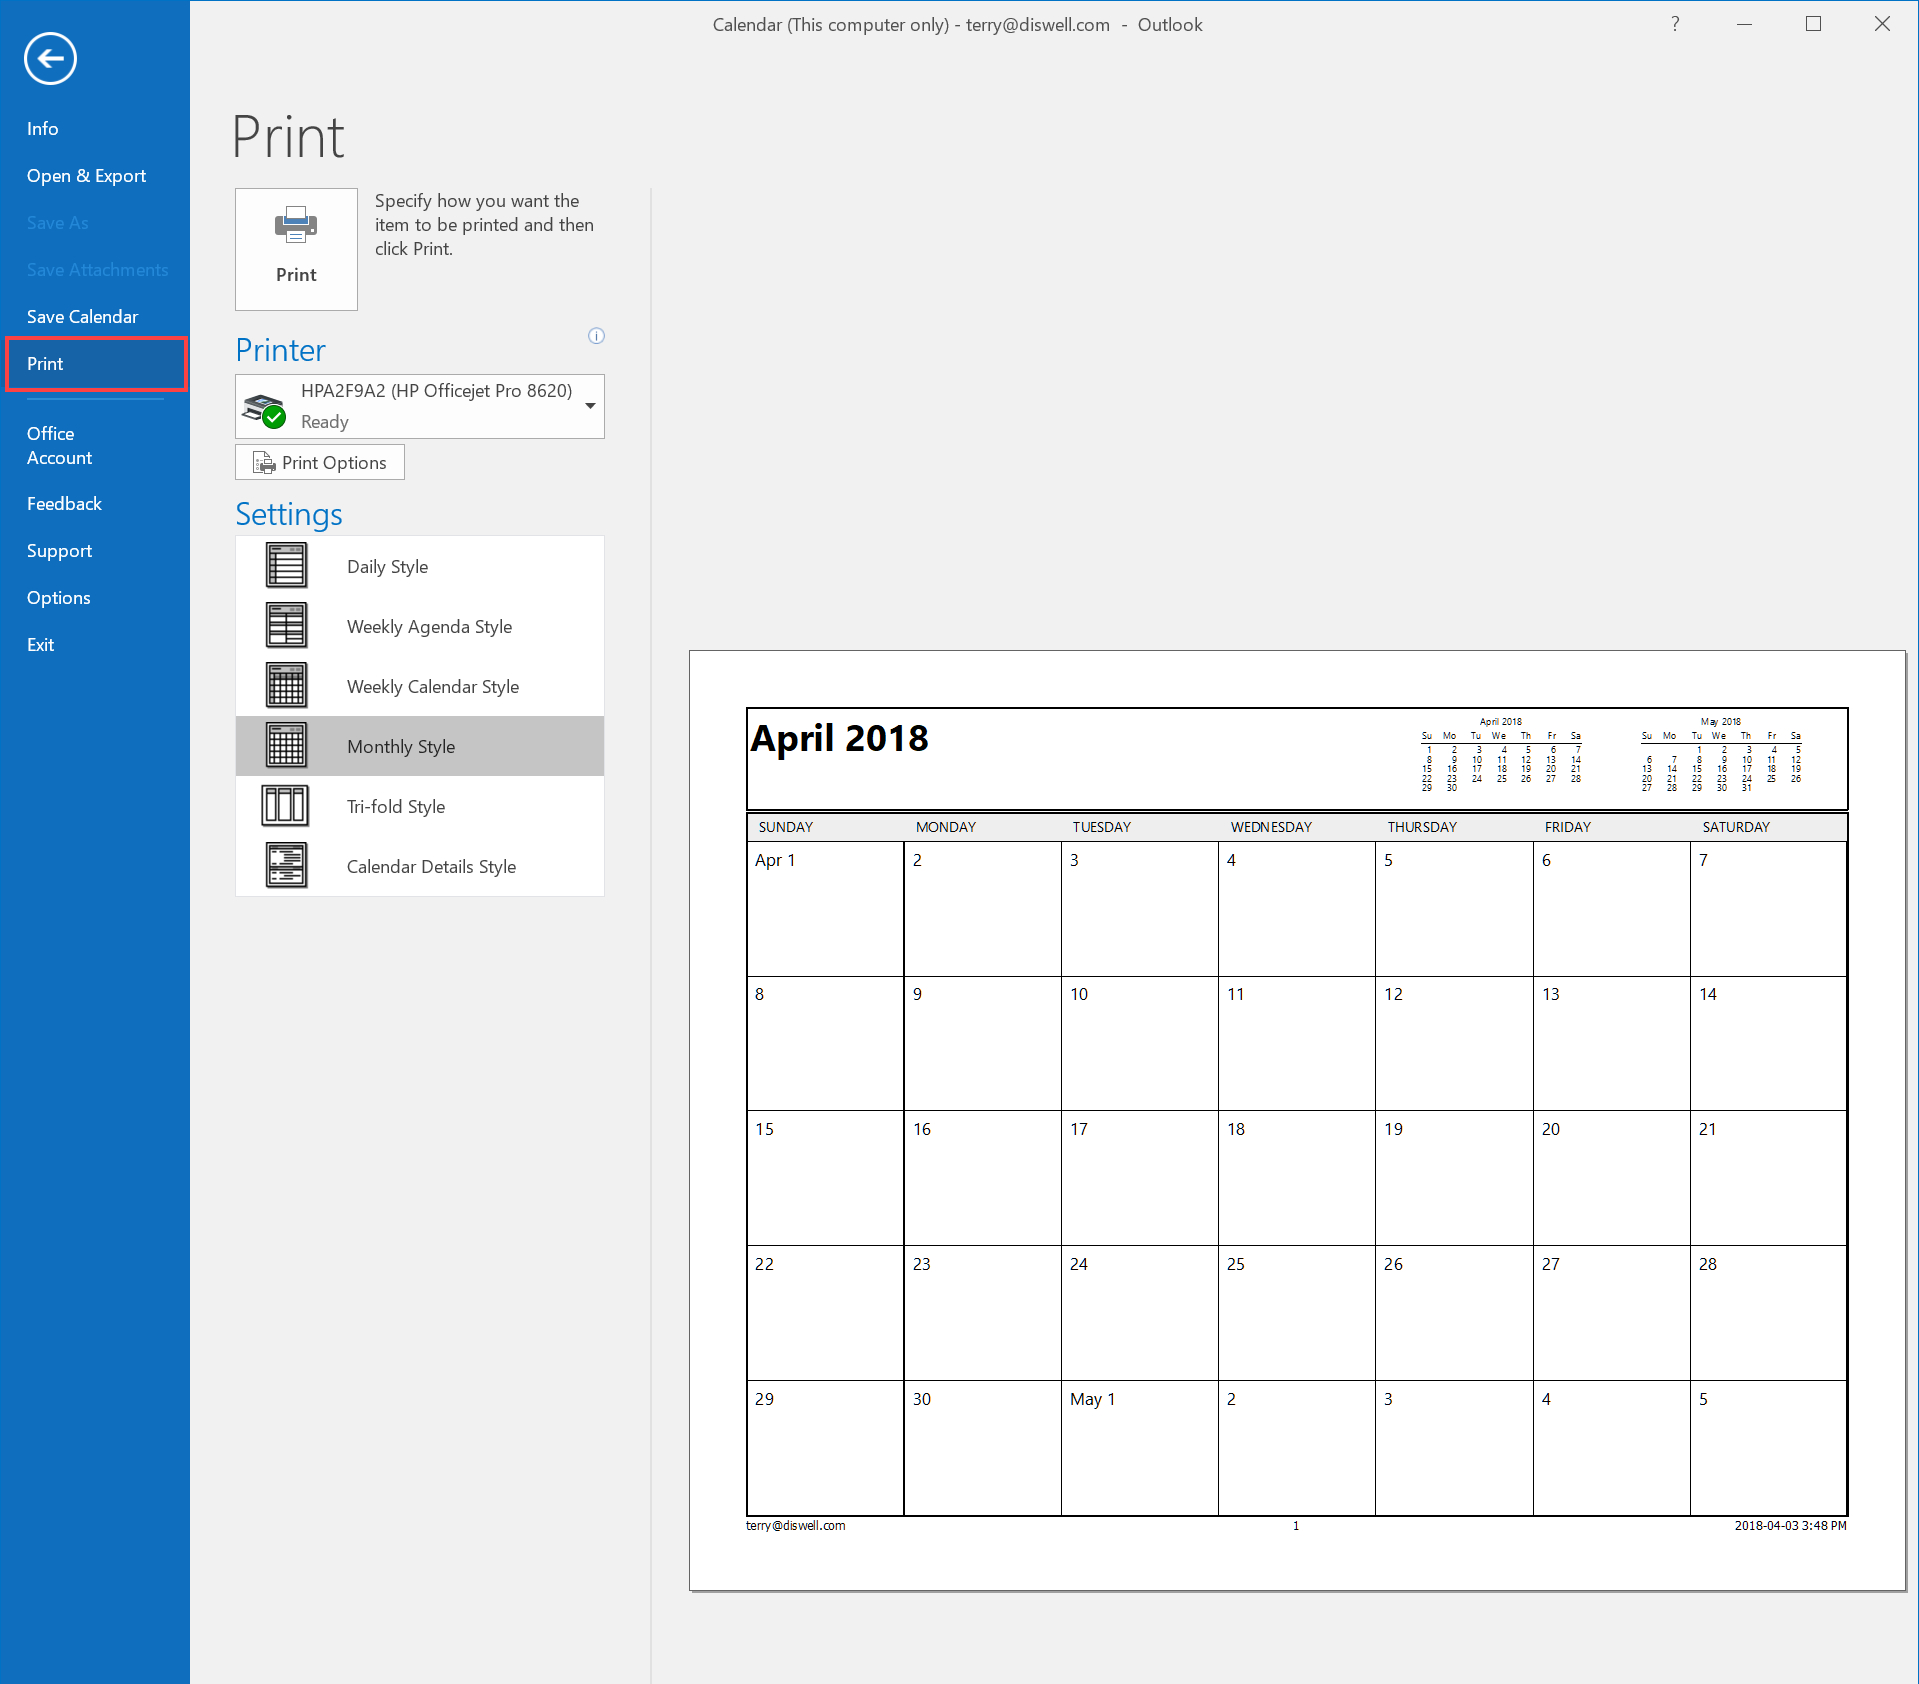 How To Email Or Print Your Calendar In Outlook 2016 inside View Calendar In Outlook 2016